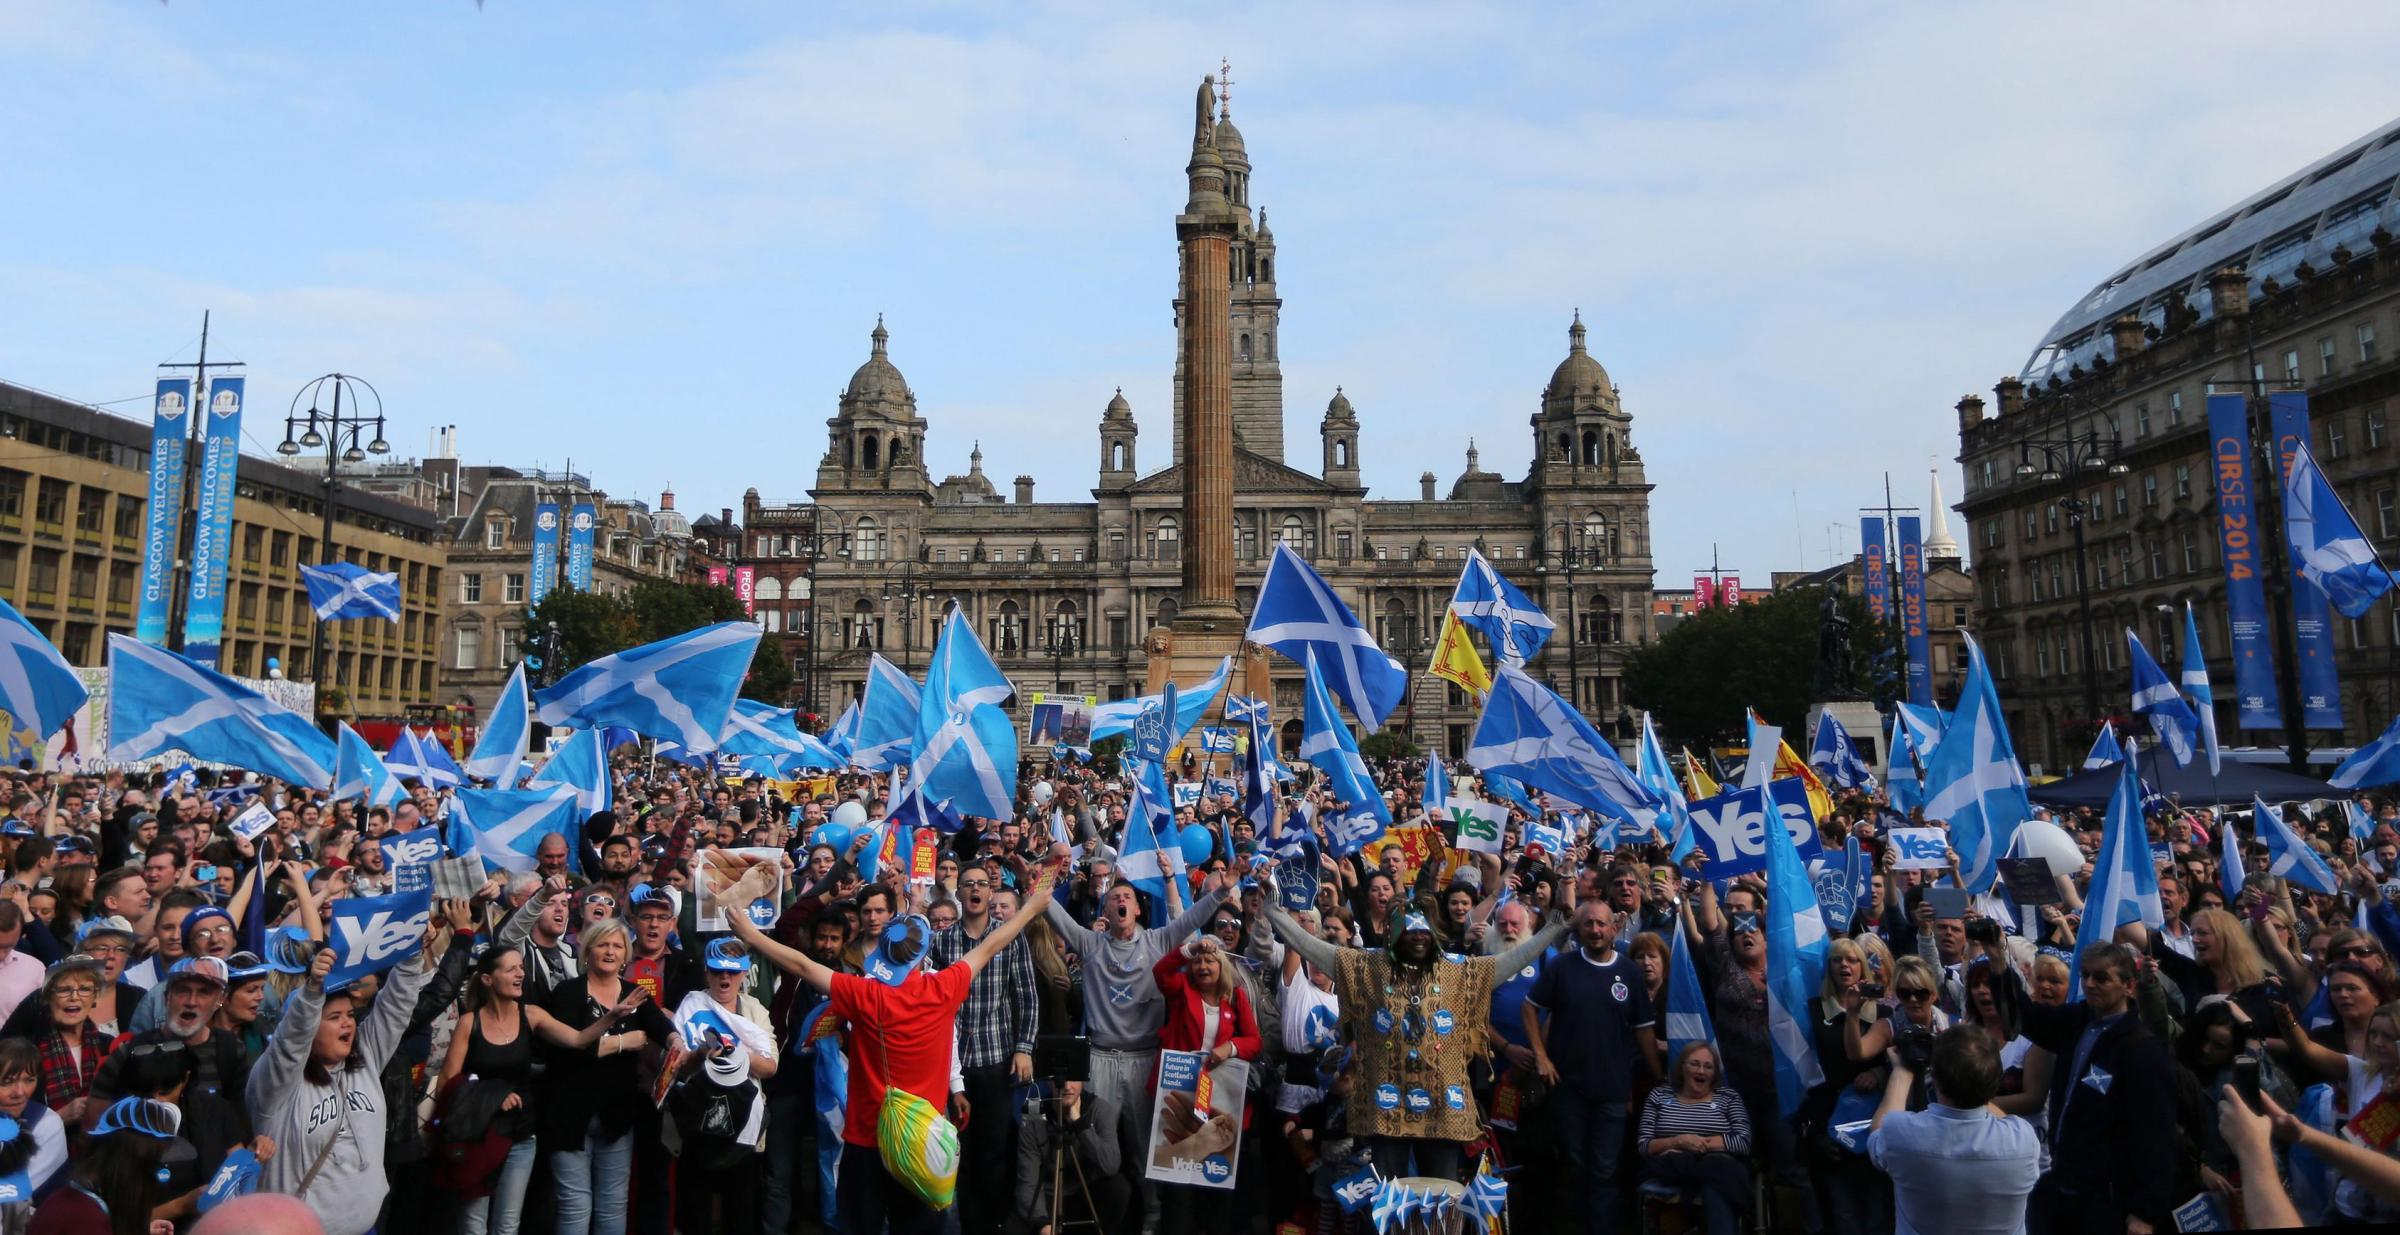 The reckless Yes campaign has done great damage to the standard of public debate